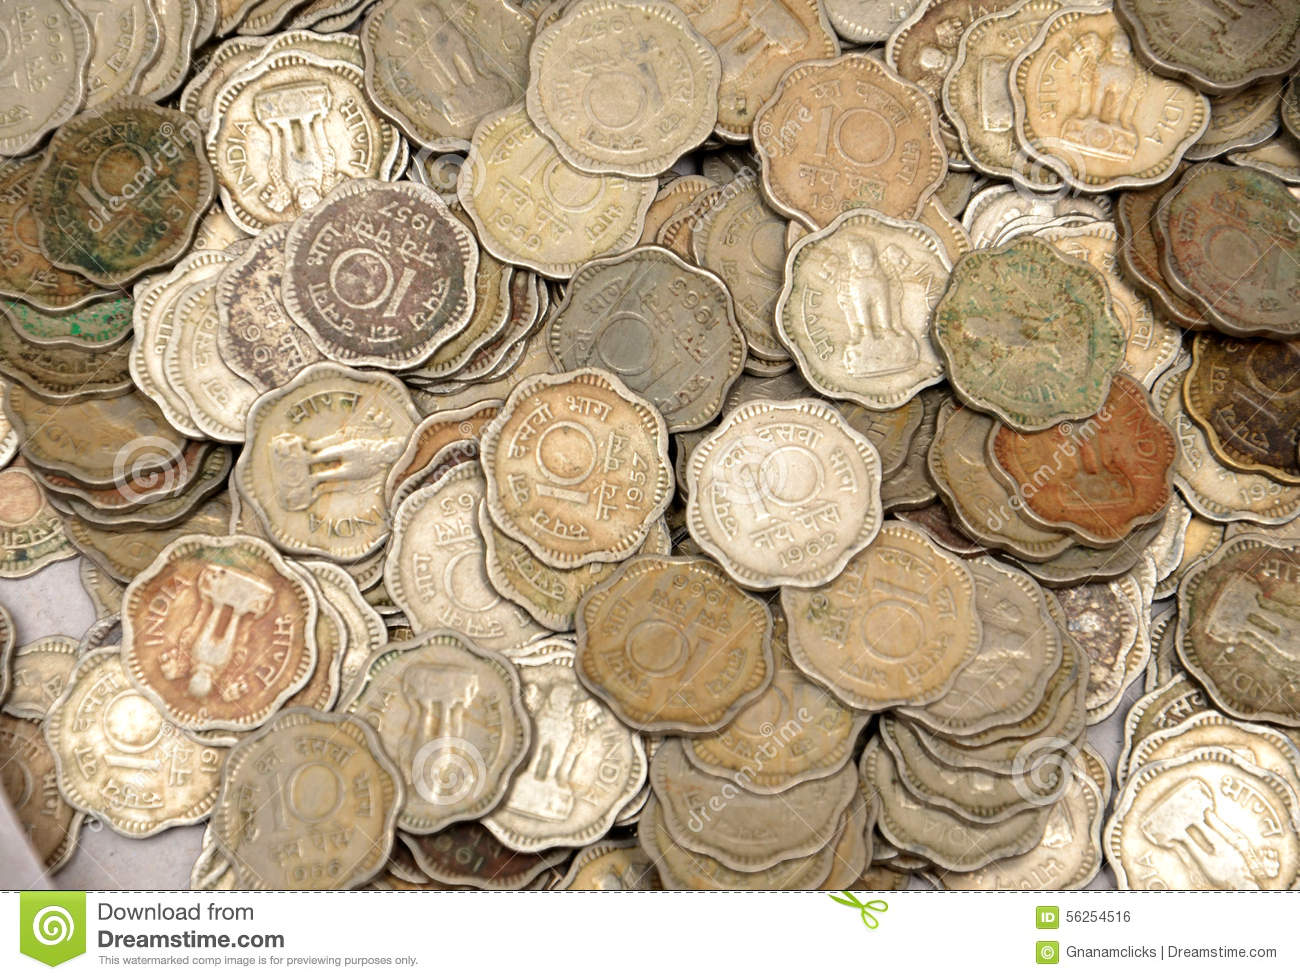 old coins stock image - photo #36